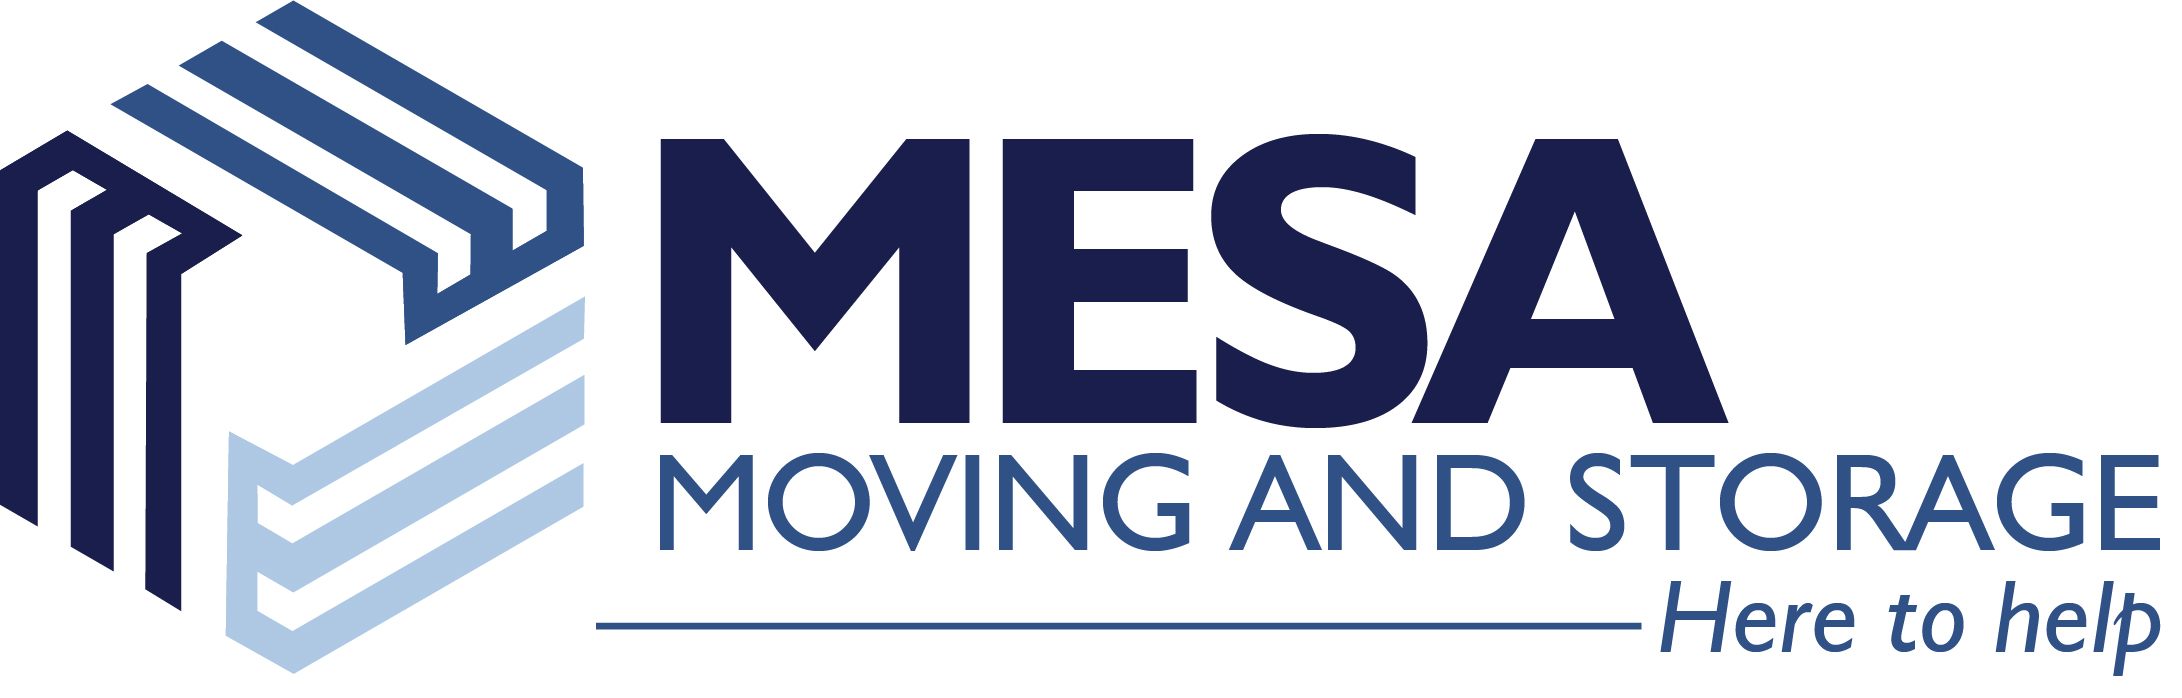 Mesa Moving and Storage - Boise